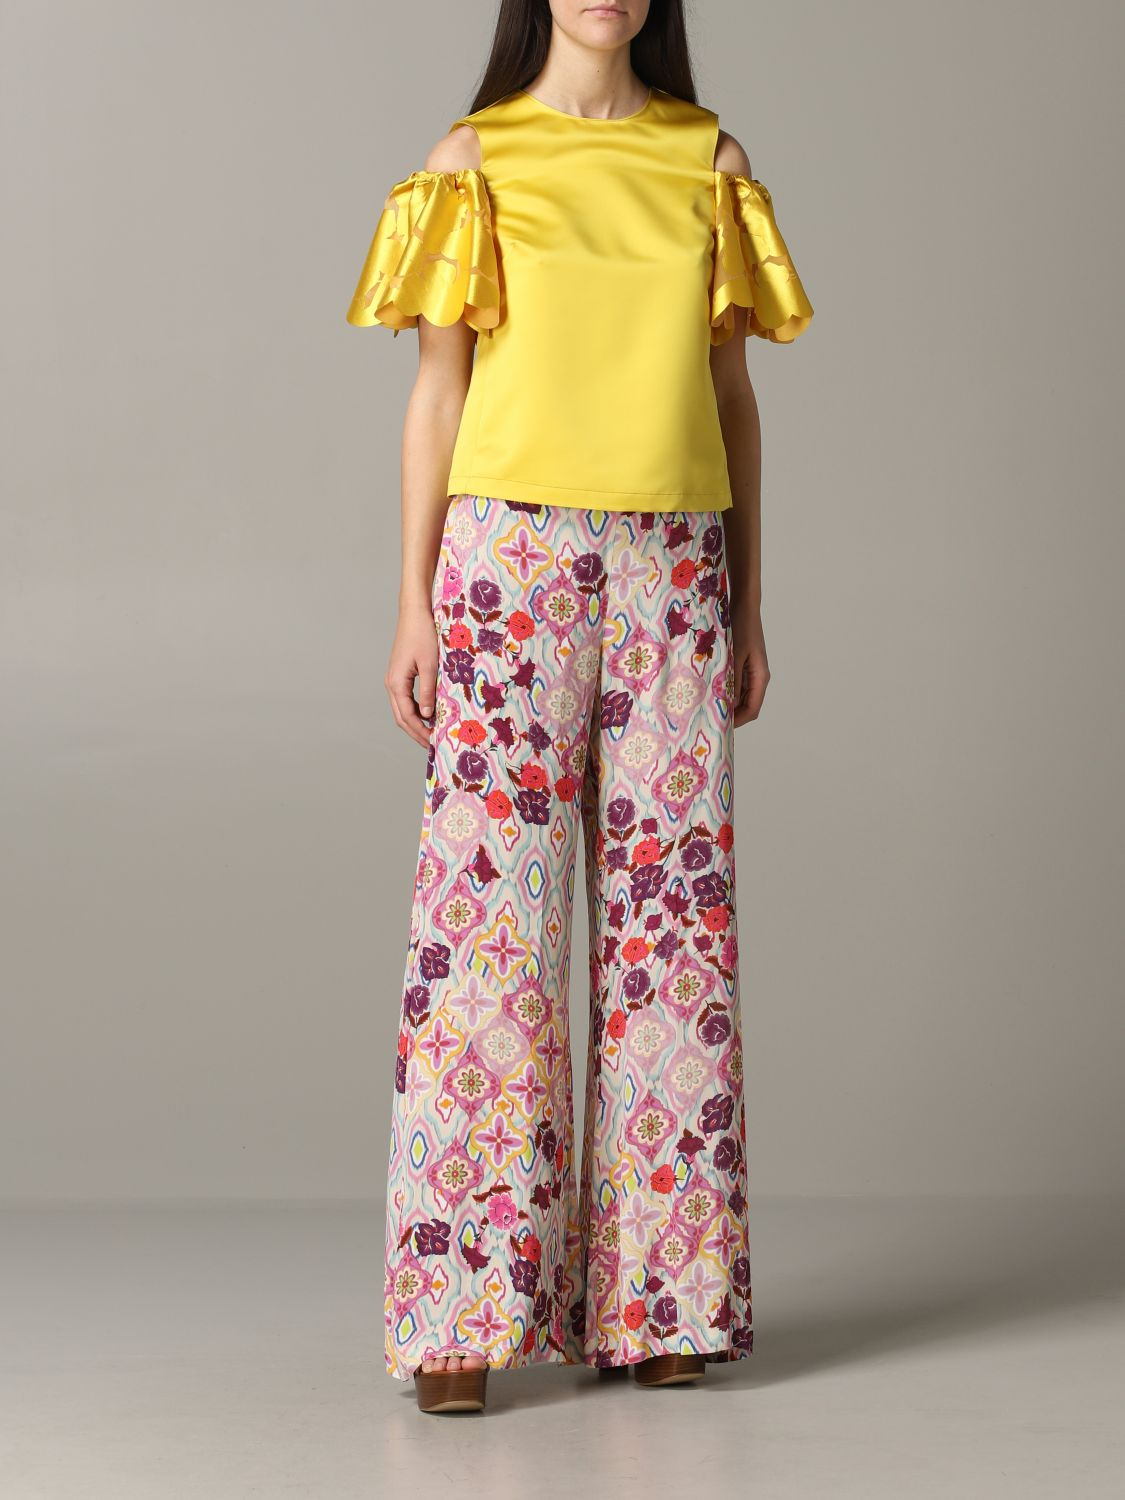 Pinko top with floral sleeves yellow 2